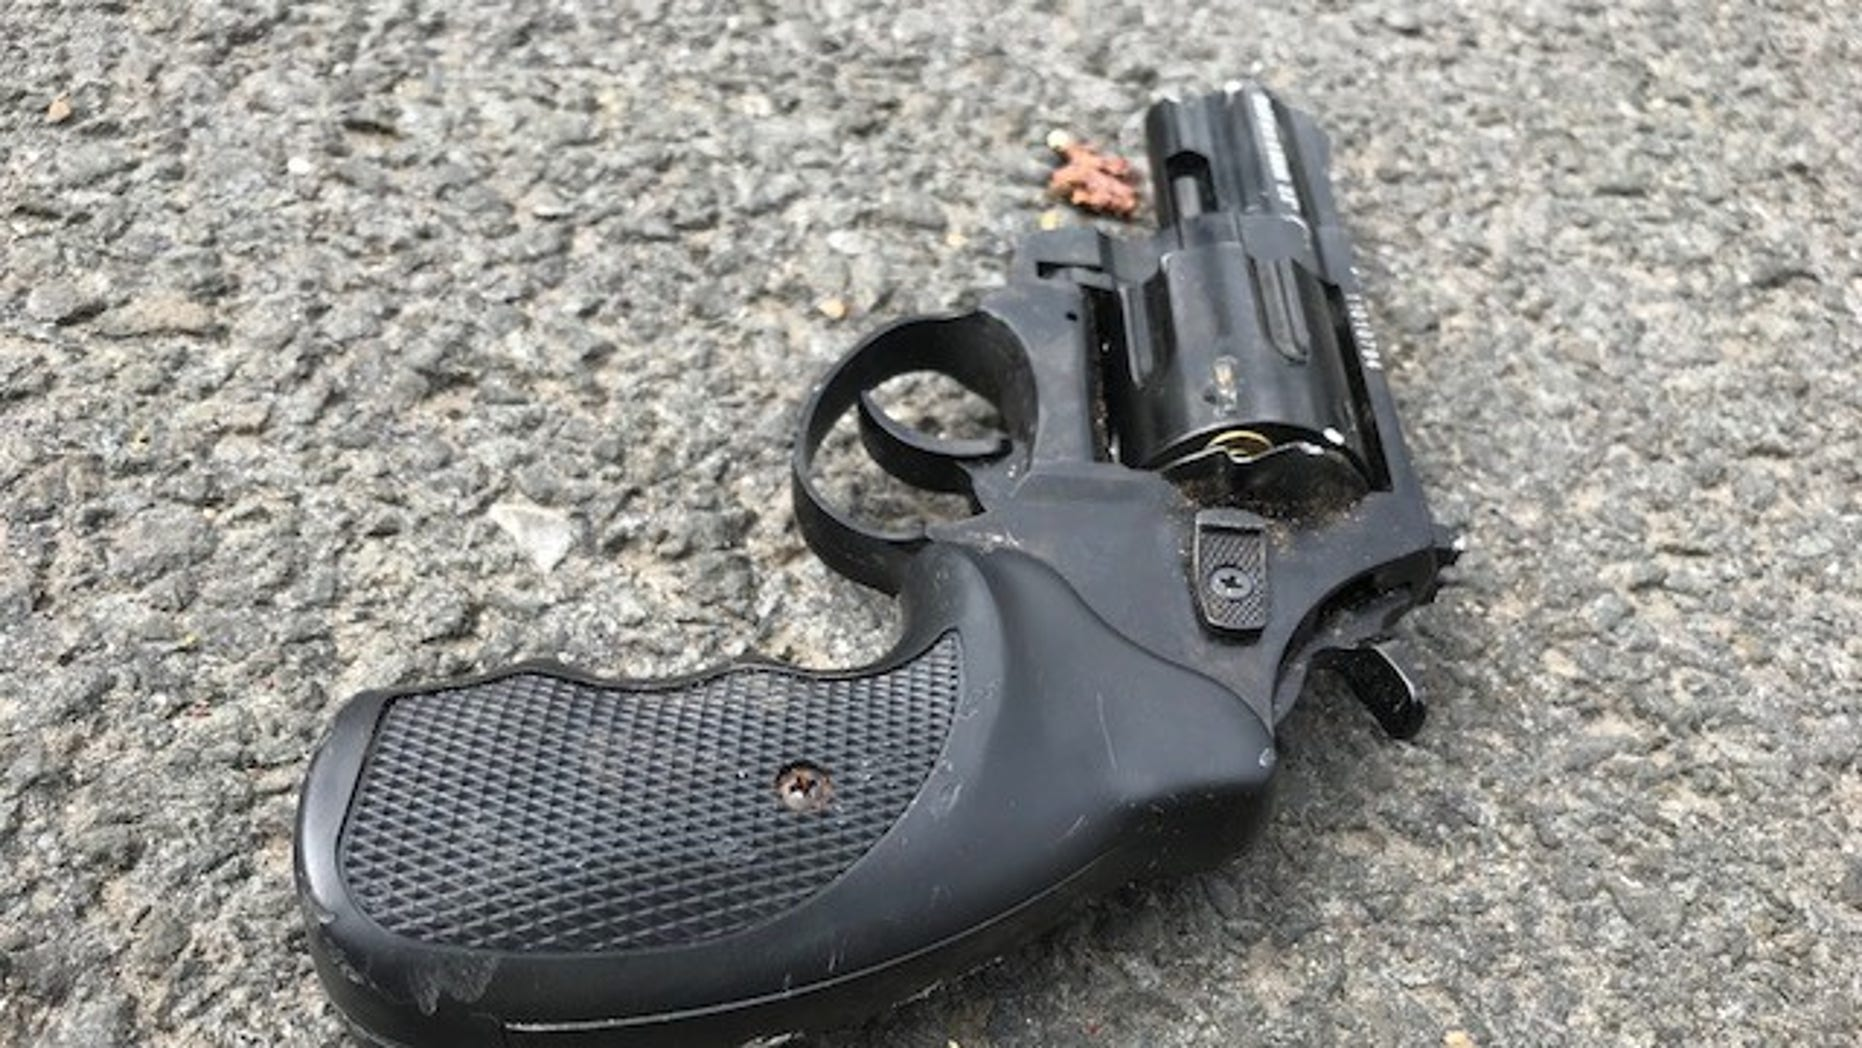 A woman with a gun was shot in the arm after a weekend of bizarre behavior and crimes, reports say.